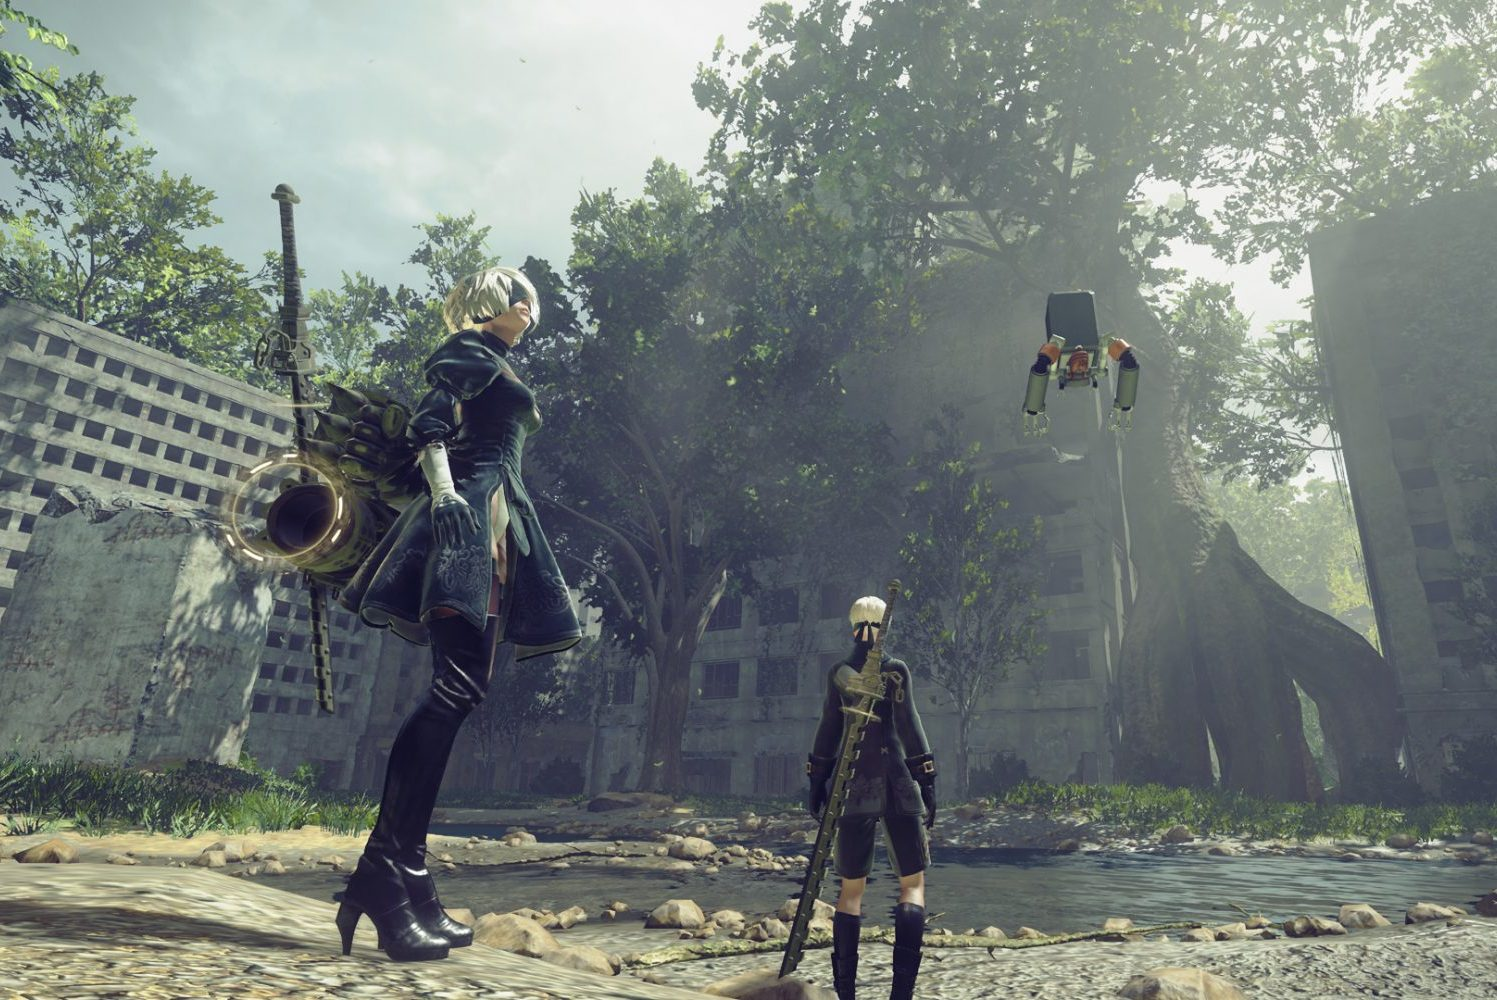 Screenshot from Nier: Automata in article about apocalyptic-themed games